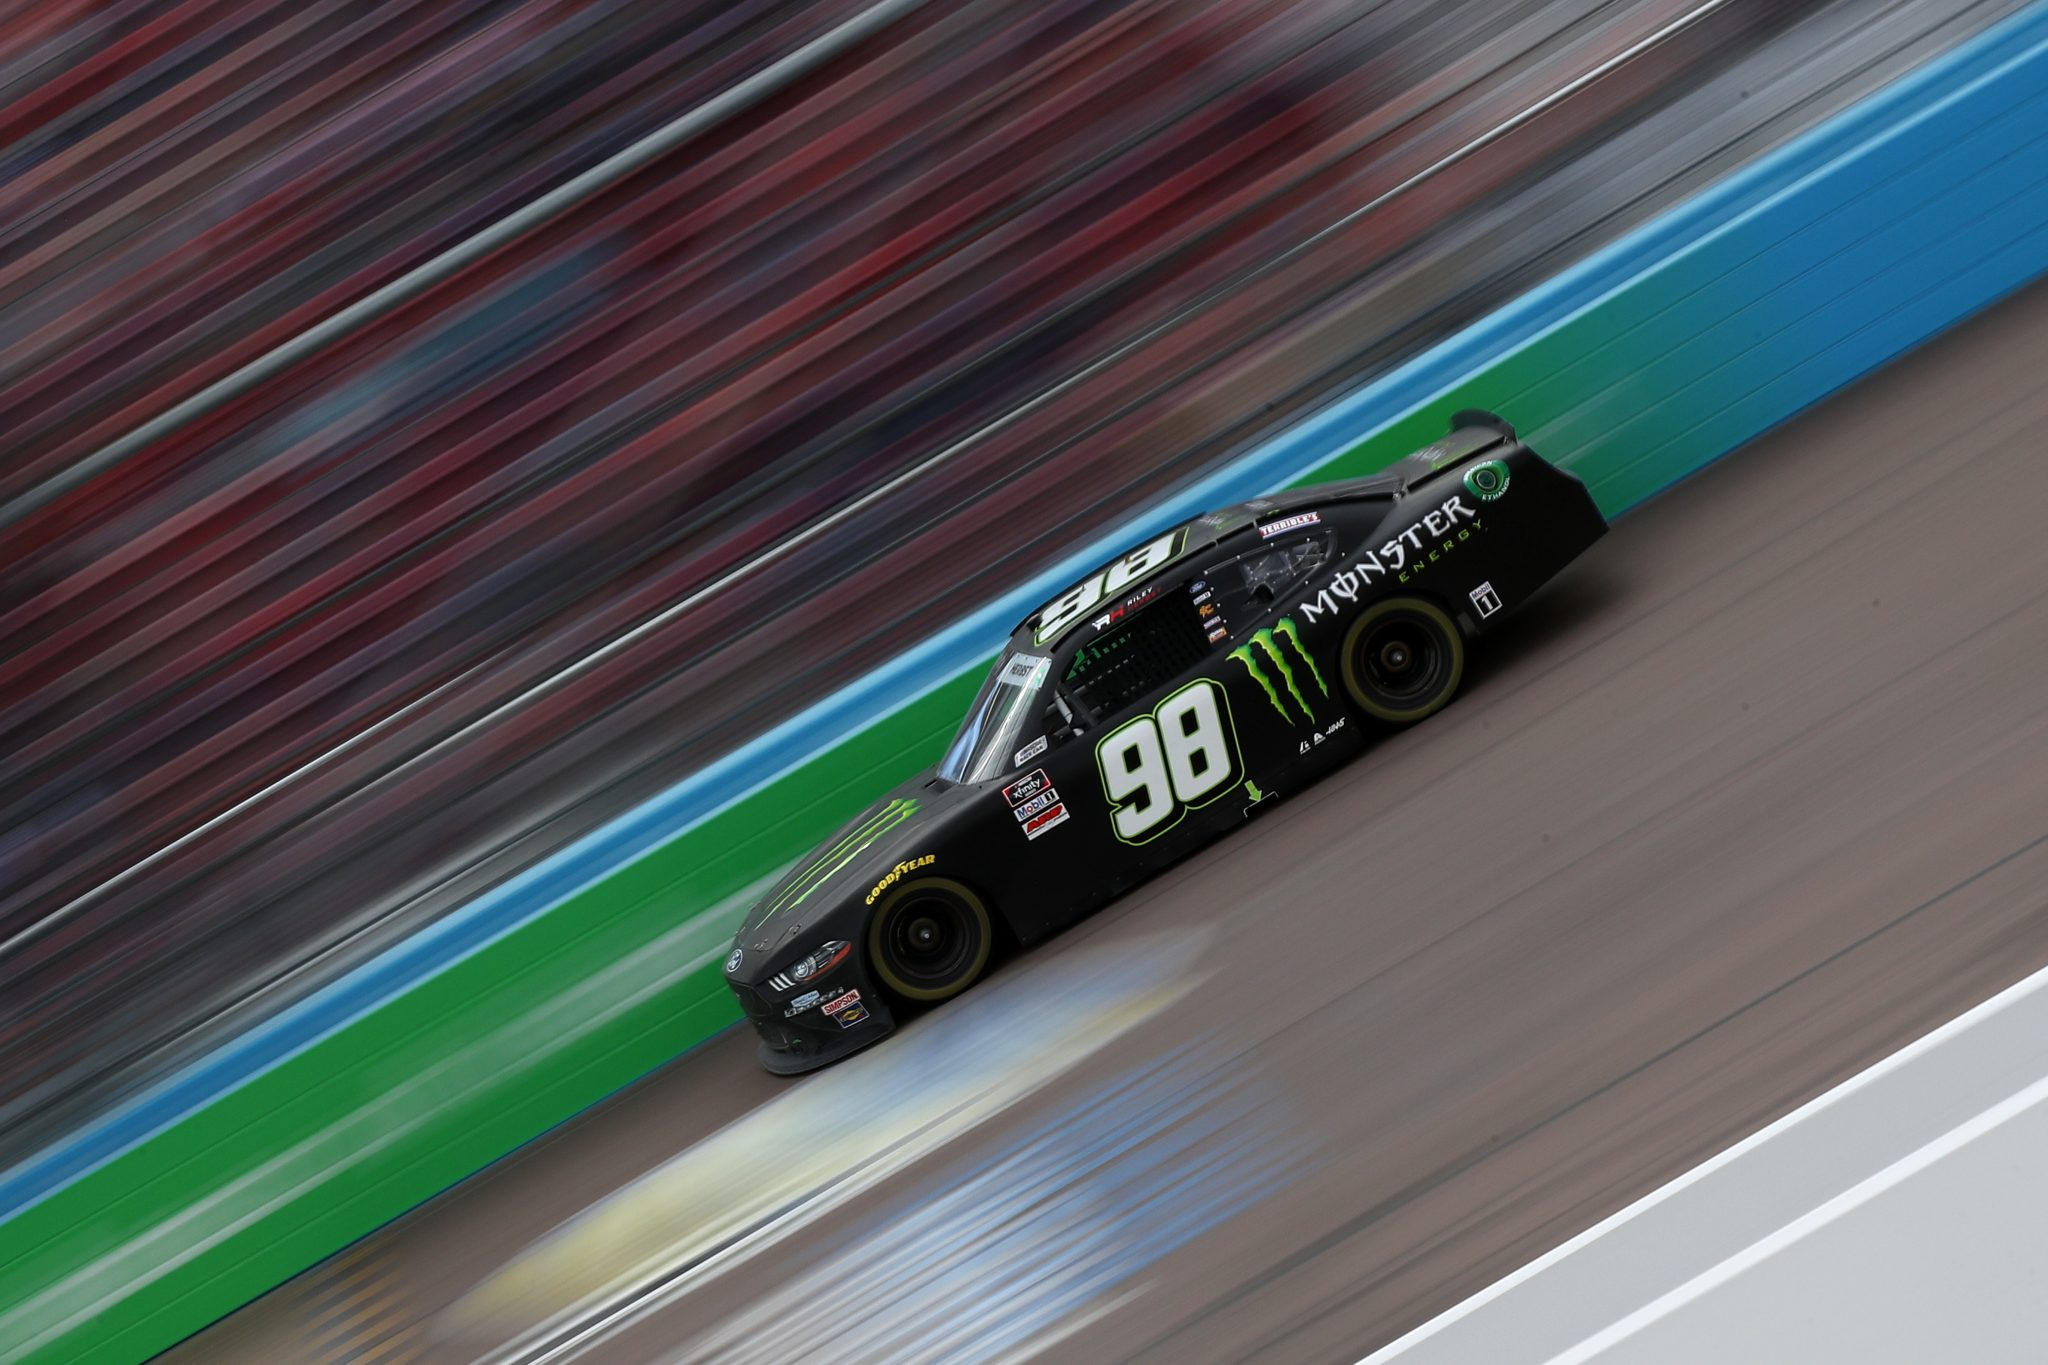 AVONDALE, ARIZONA - MARCH 13: Riley Herbst, driver of the #98 Monster Energy Ford, drives during the NASCAR Xfinity Series Call 811 Before You Dig 200 presented by Arizona 811 at Phoenix Raceway on March 13, 2021 in Avondale, Arizona. (Photo by Sean Gardner/Getty Images)   Getty Images